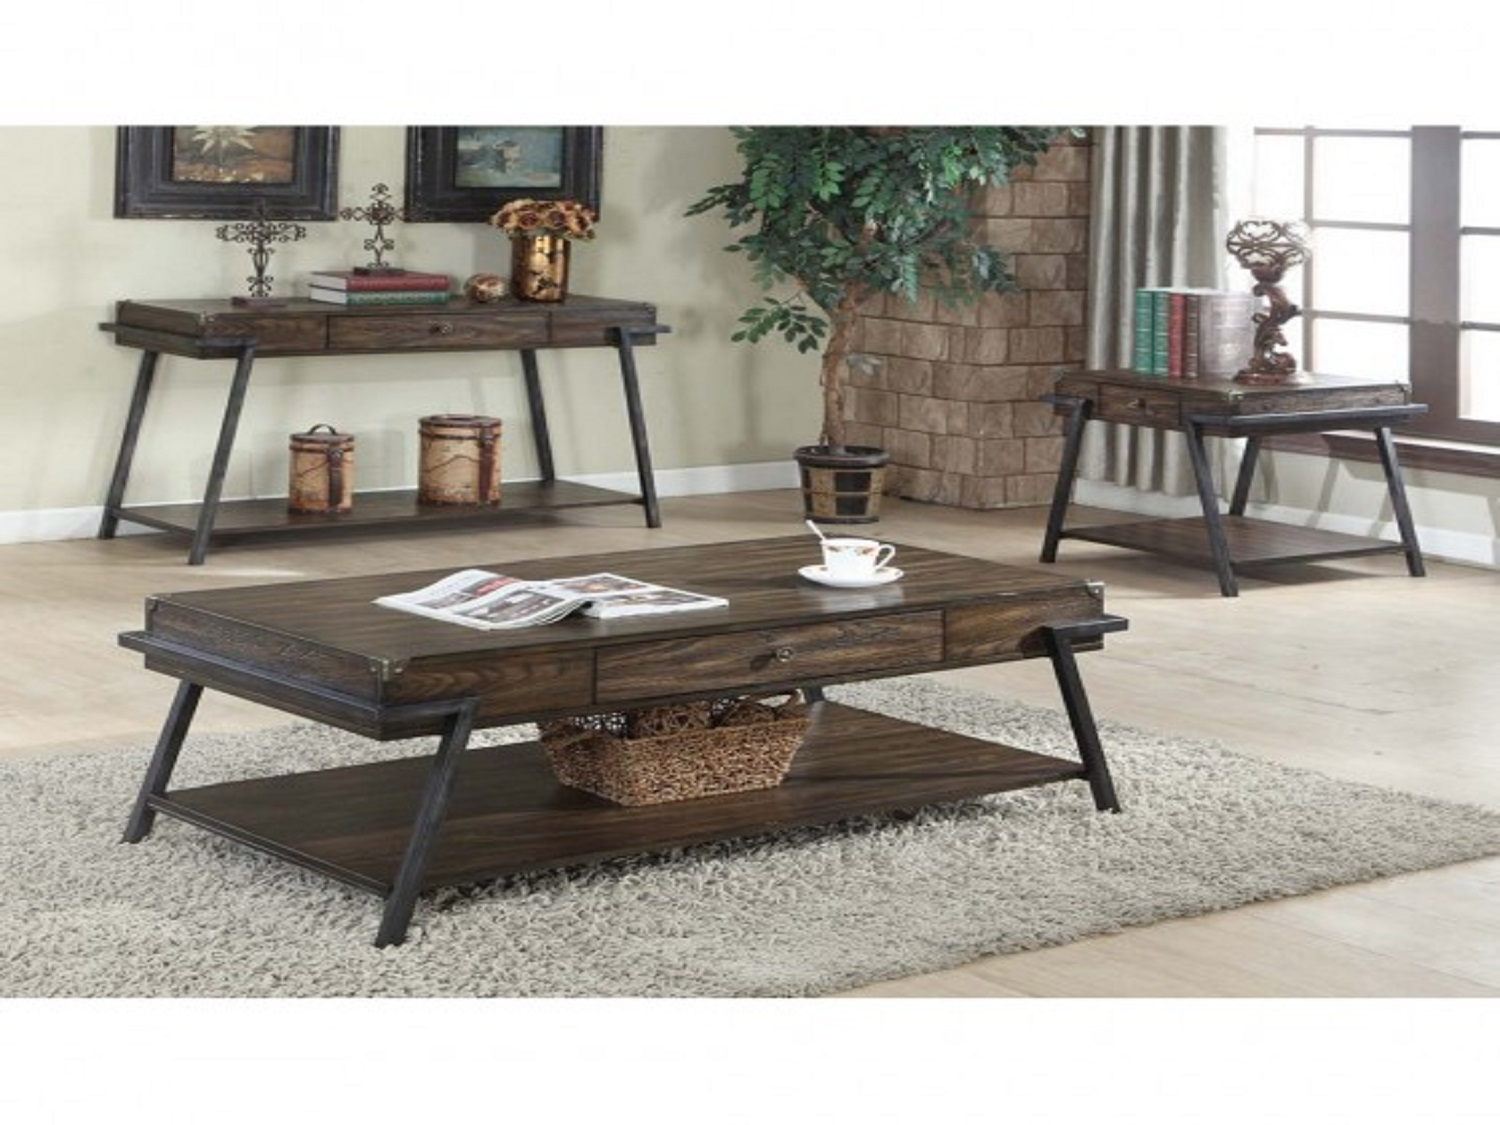 Magnum Coffee Table Only, 227, Coffee Tables by Midha Furniture to Brampton, Mississauga, Etobicoke, Toronto, Scraborough, Caledon, Oakville, Markham, Ajax, Pickering, Oshawa, Richmondhill, Kitchener, Hamilton and GTA area